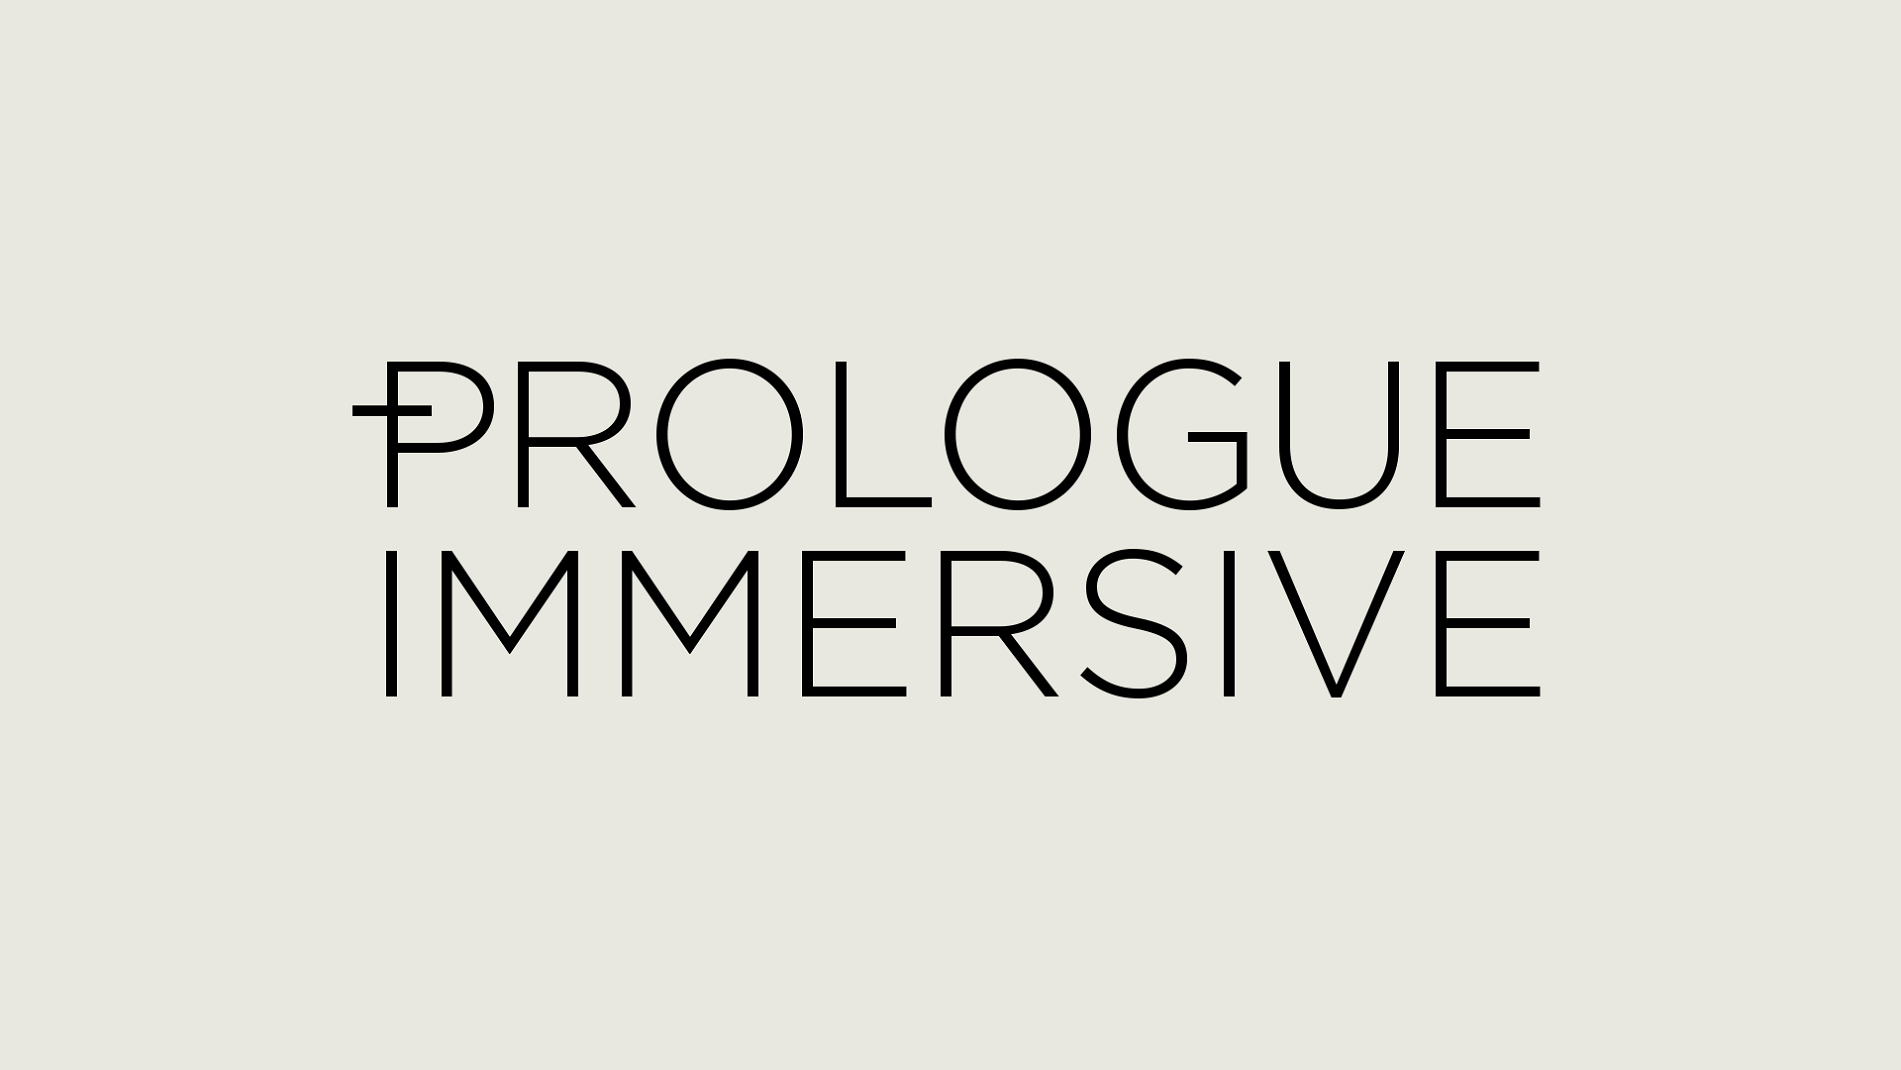 prologue immersive